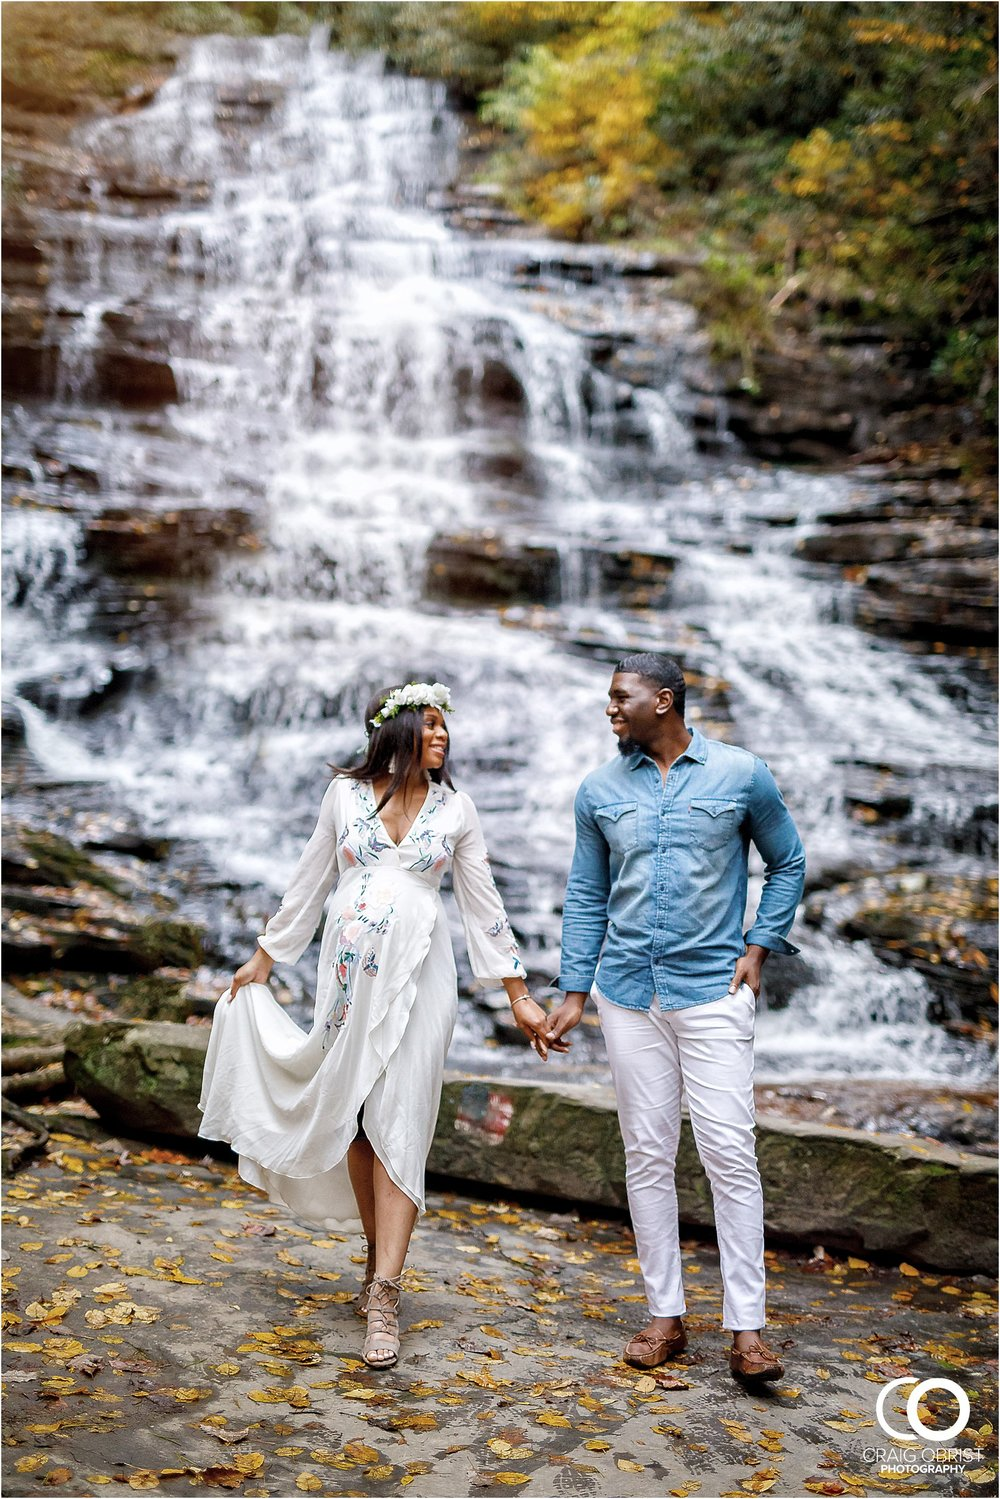 Waterfall Maternity Wedding Portraits North Georgia Atlanta_0008.jpg